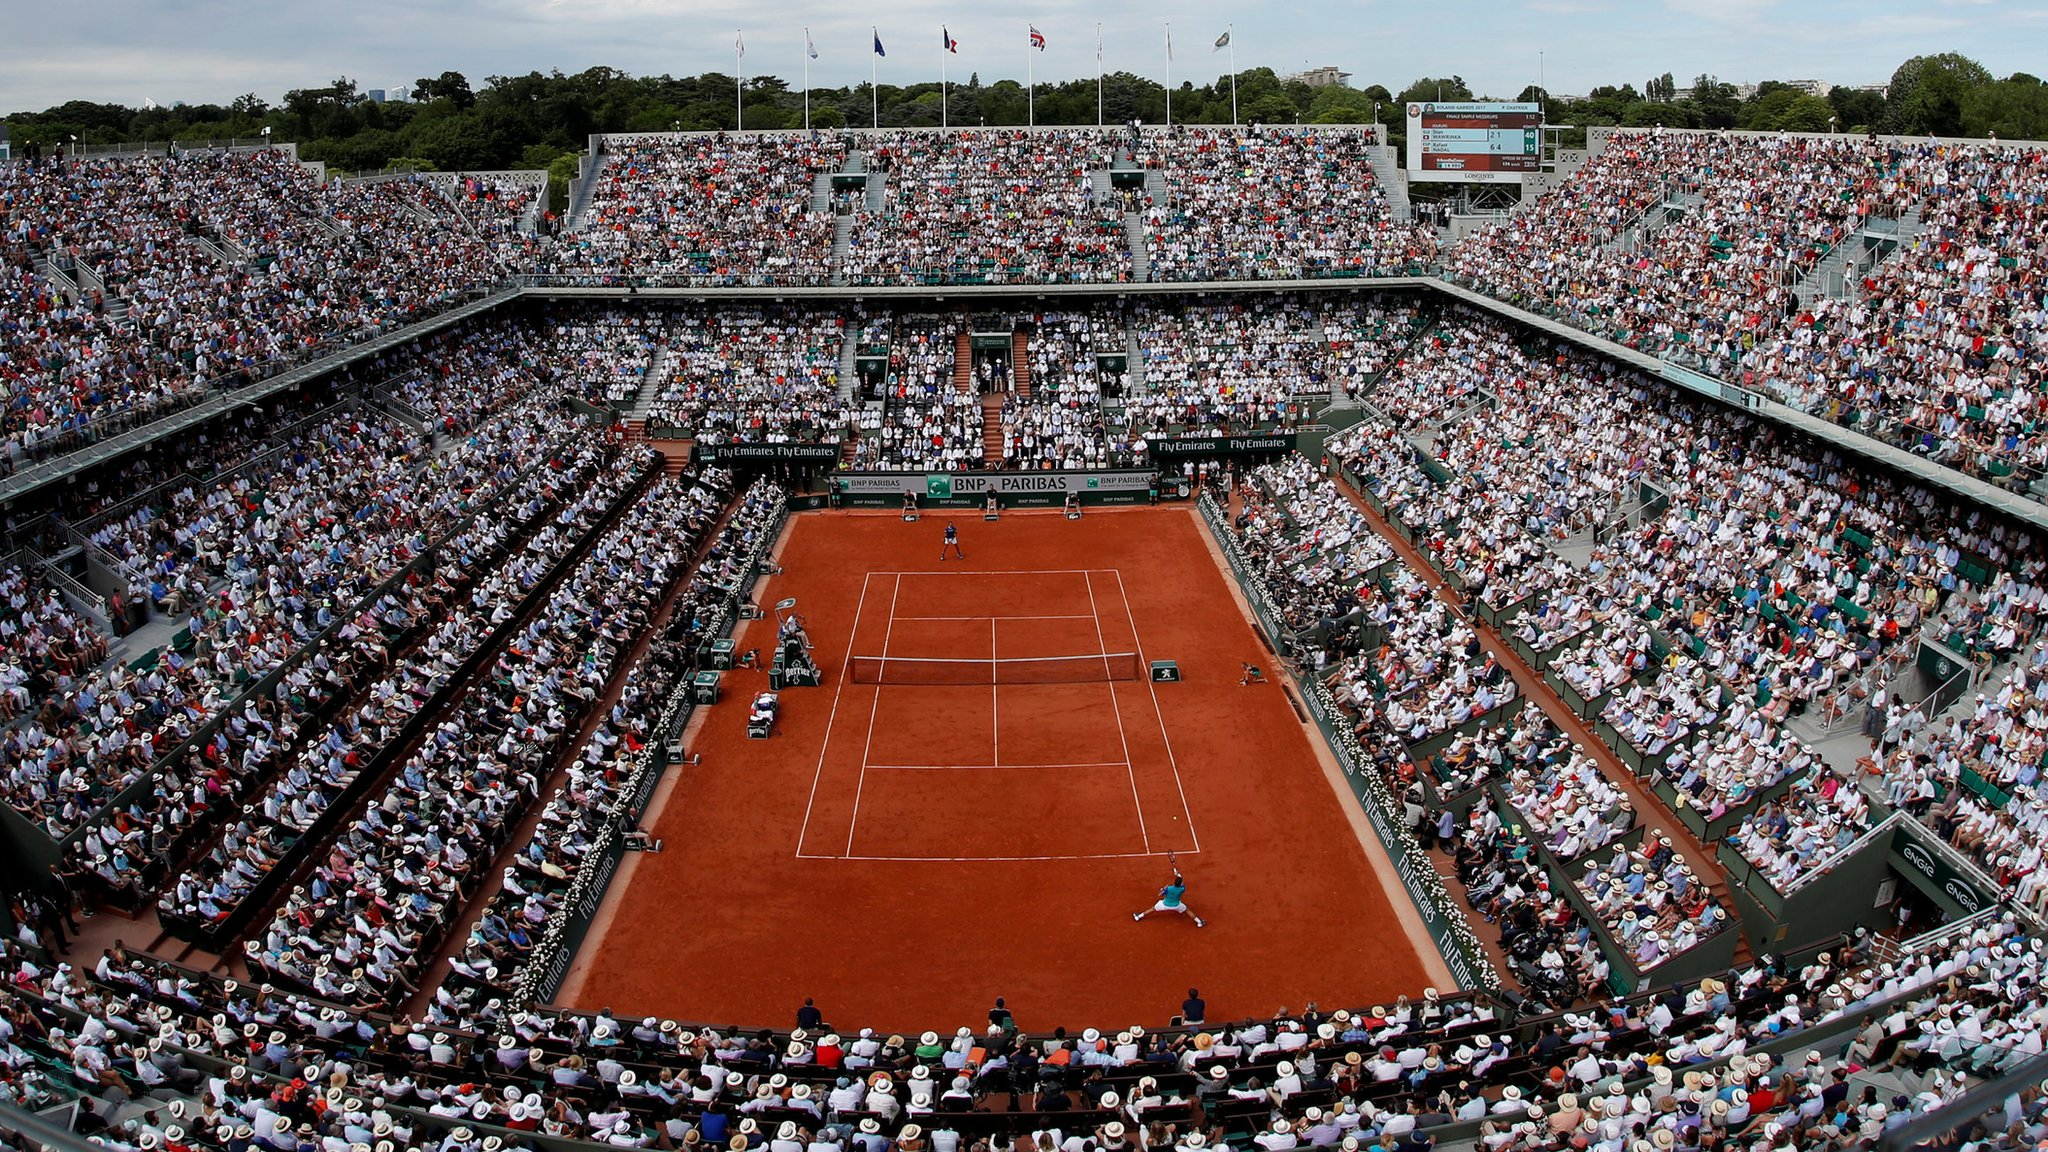 French Open 2018: How many multiple singles champions can you name?